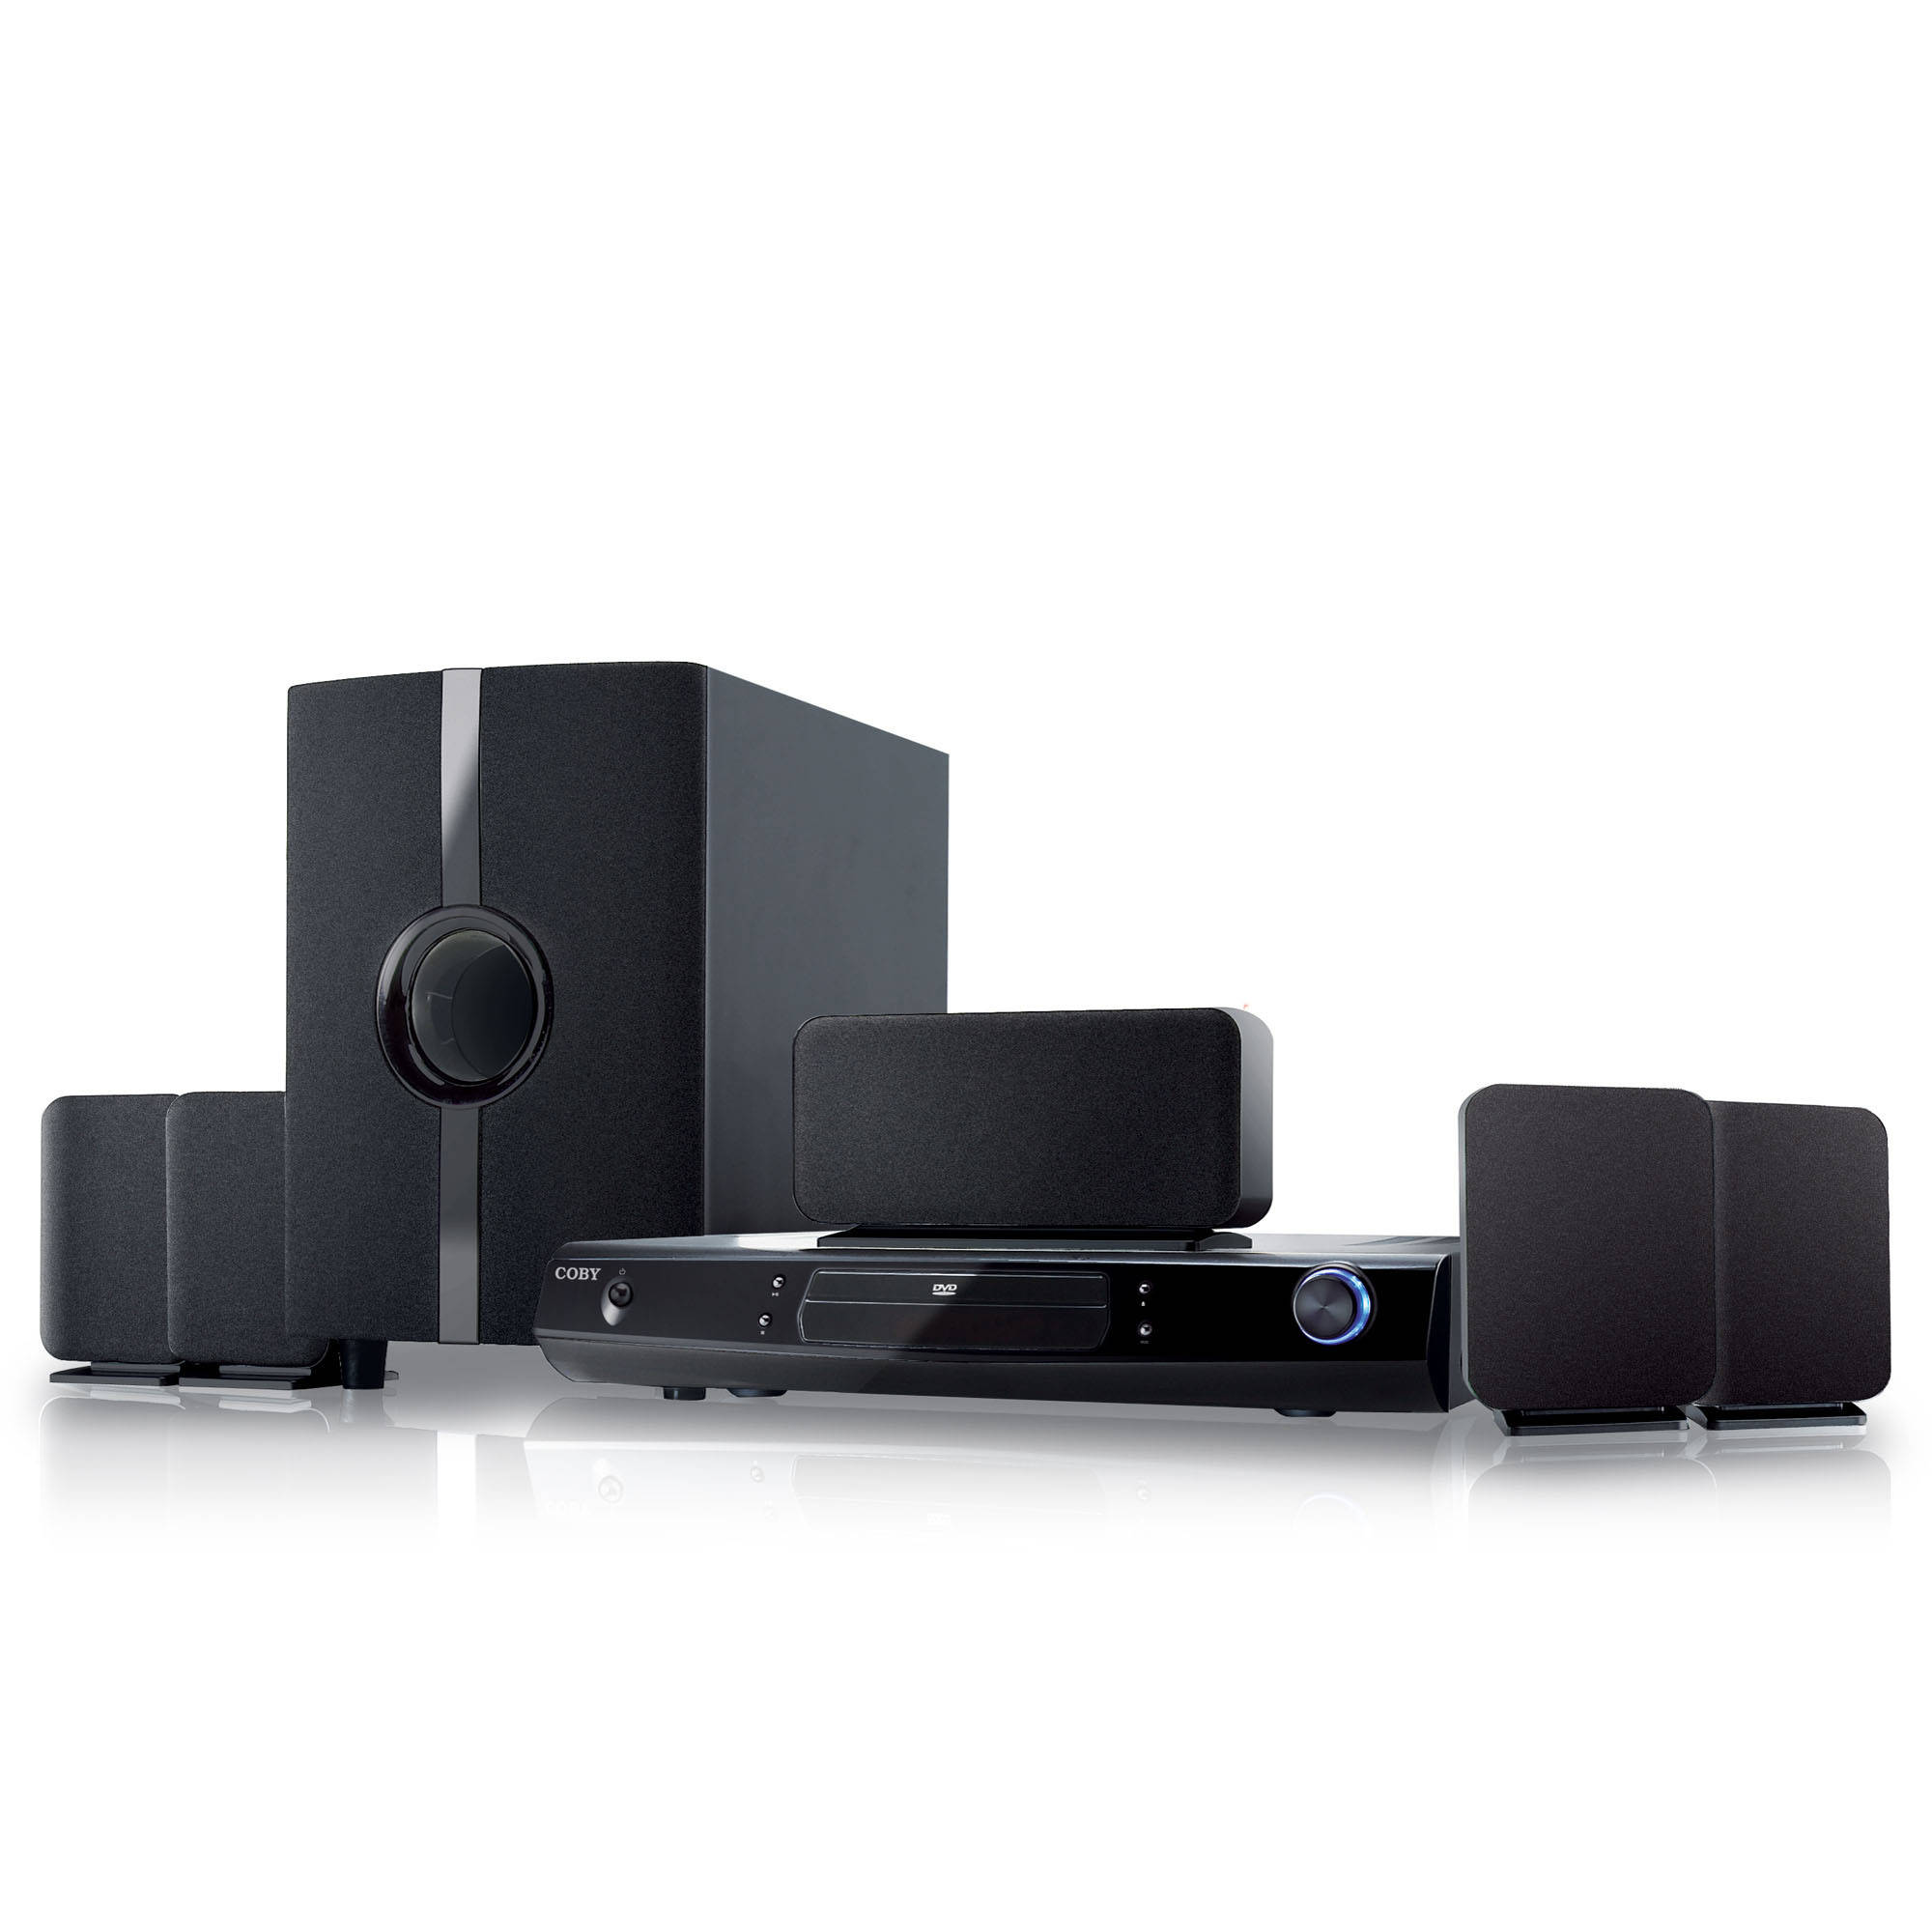 Coby DVD968 5.1-Channel DVD Home Theater System